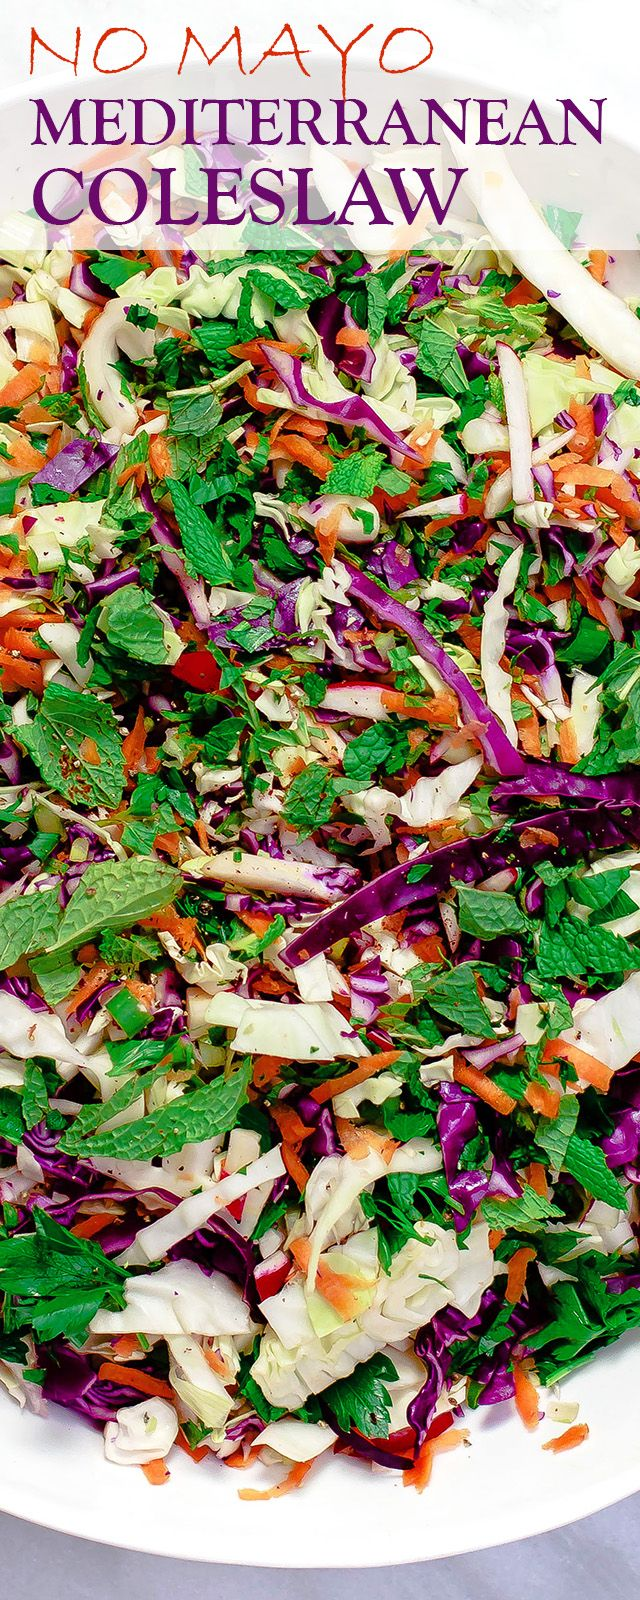 Mediterranean Coleslaw and Salmon Bowls | The Mediterranean Dish. A Mediterranean-style, no-mayo coleslaw recipe with cabbage, carrots, fresh mint and parsely, fresh ginger root; and a garlic citrus and olive oil dressing! Serve it along with your protein of choice; I like to add salmon. Click the image to see the step-by-step and browse more from TheMediterraneanDish.com . #spon